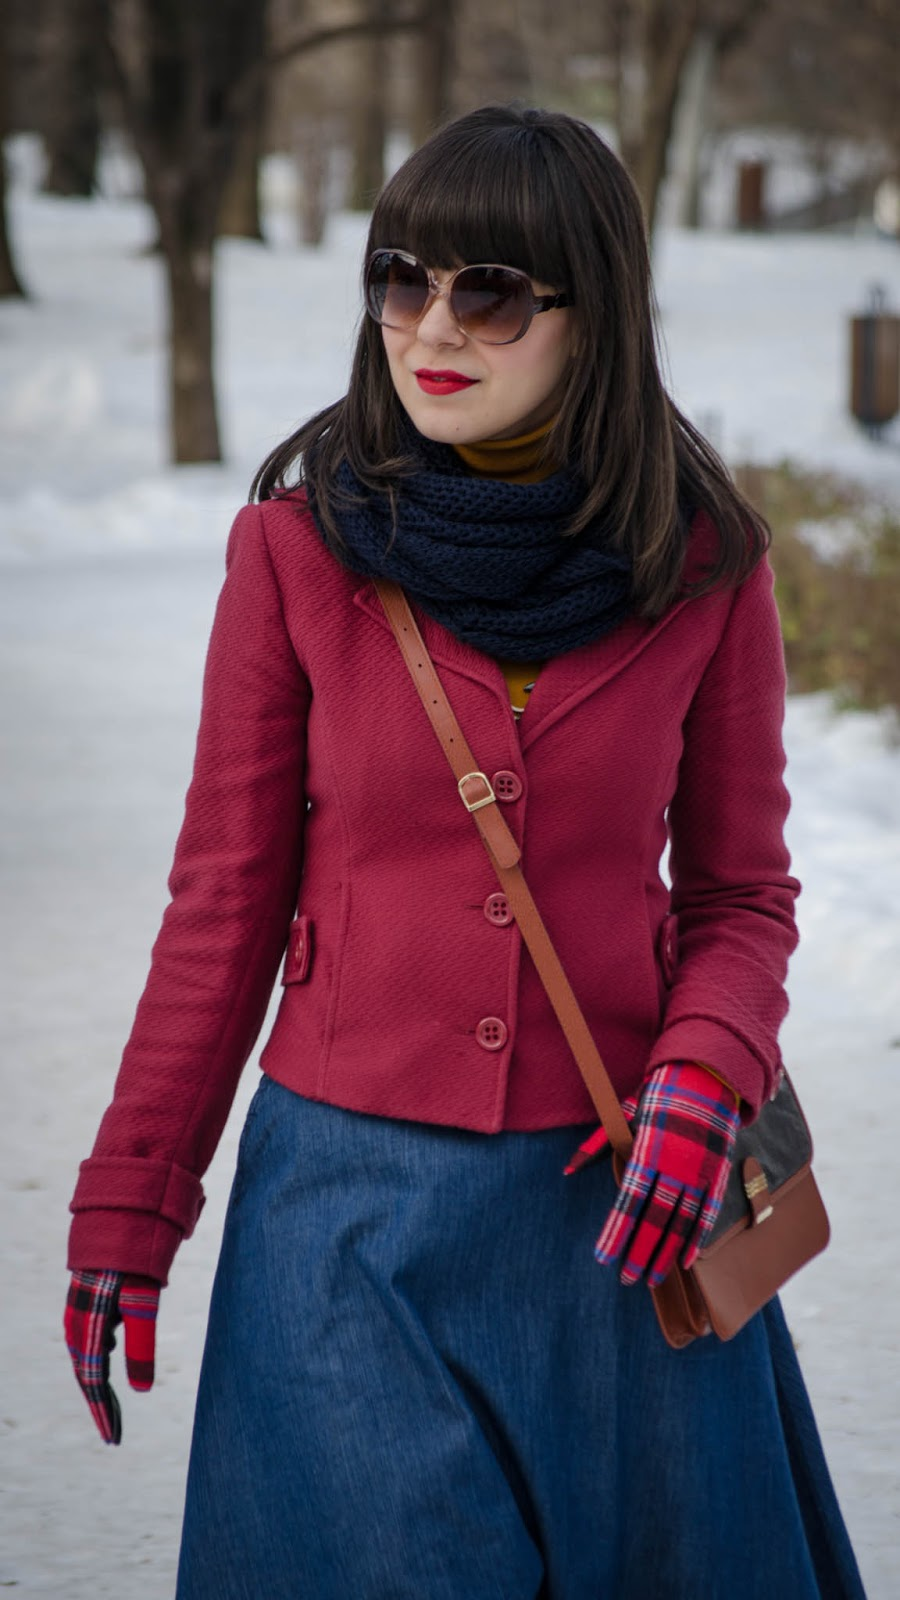 A line jeans skirt stradivarius marsala miniprix jacket tartan gloves mustard turtleneck bike wooden necklace  navy scarf burgundy shoes romanian producer trifted bag